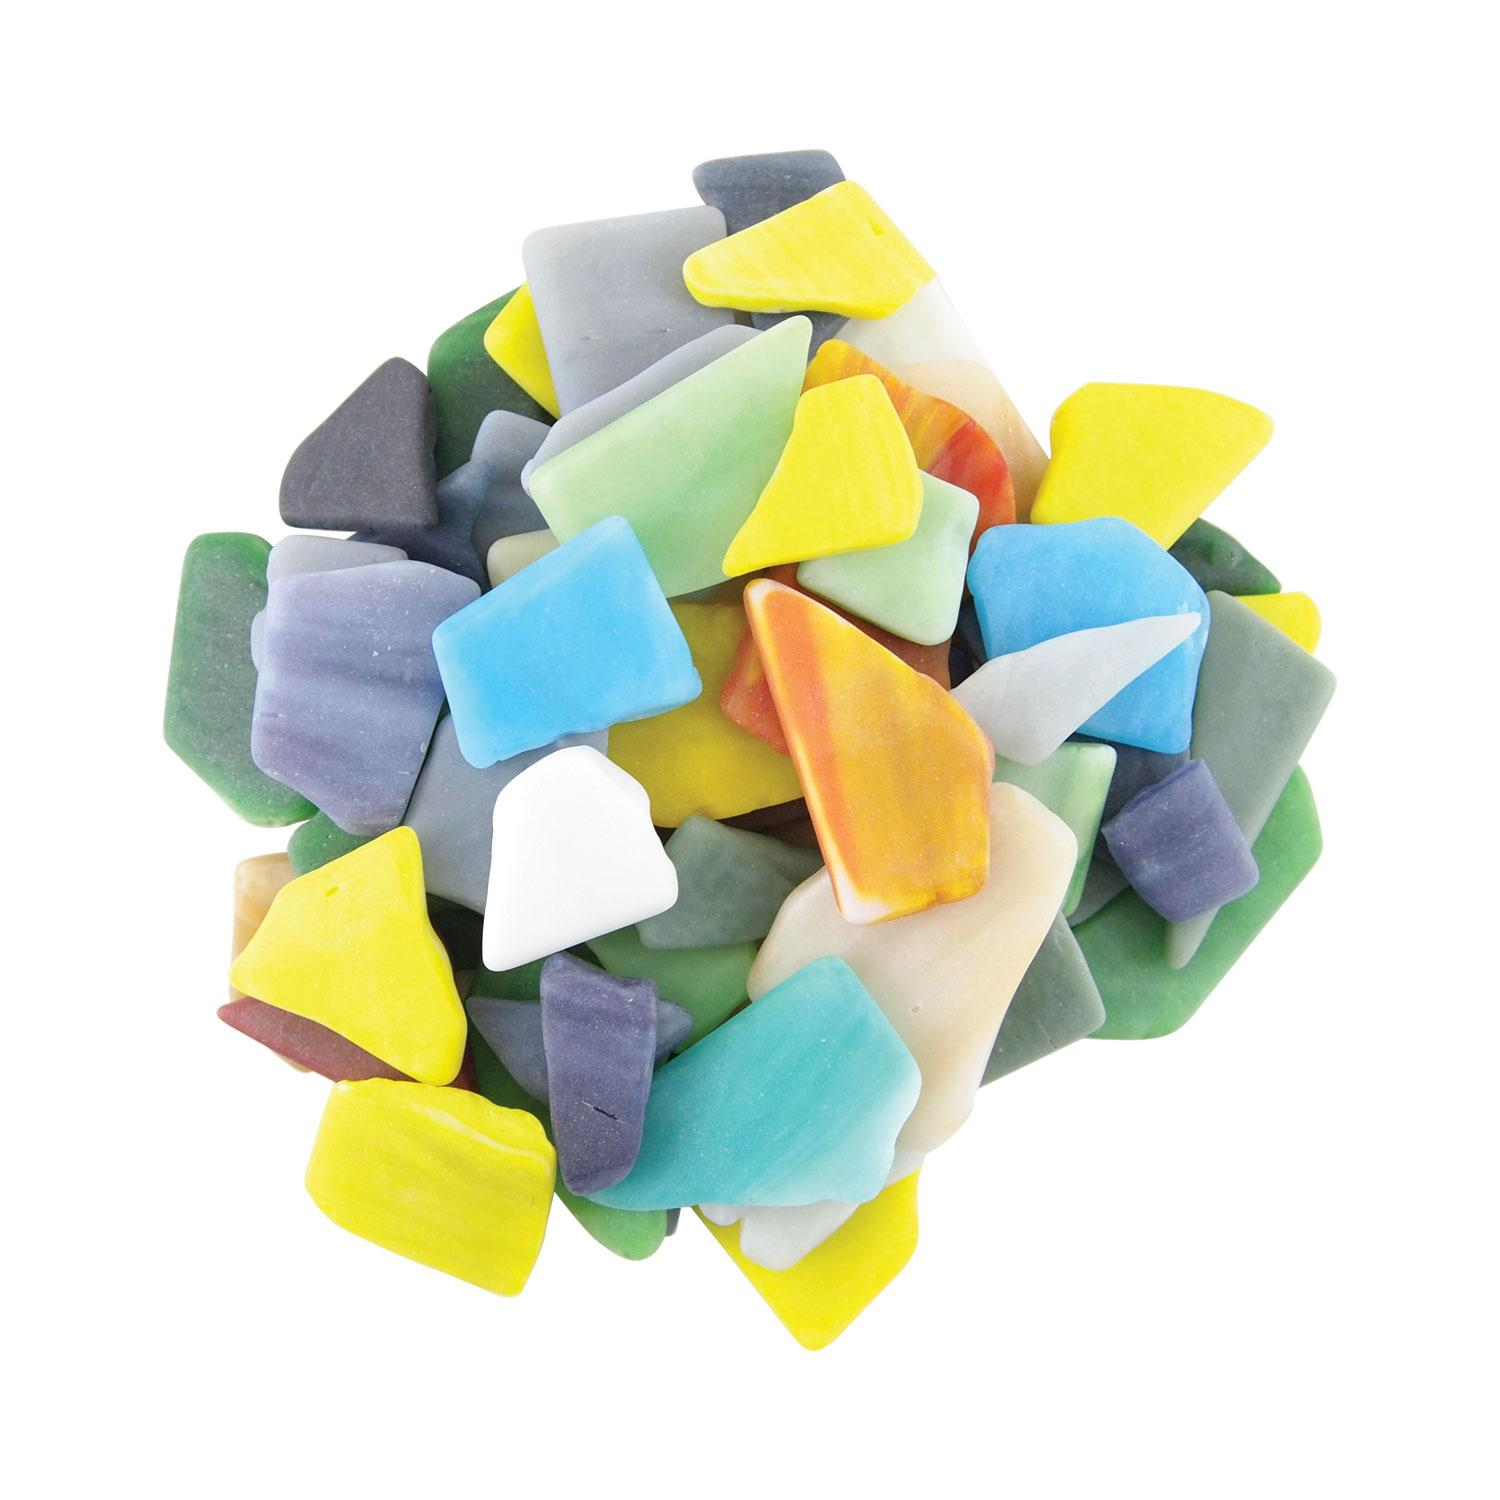 Tumbled Glass Variety Mix - 20 oz